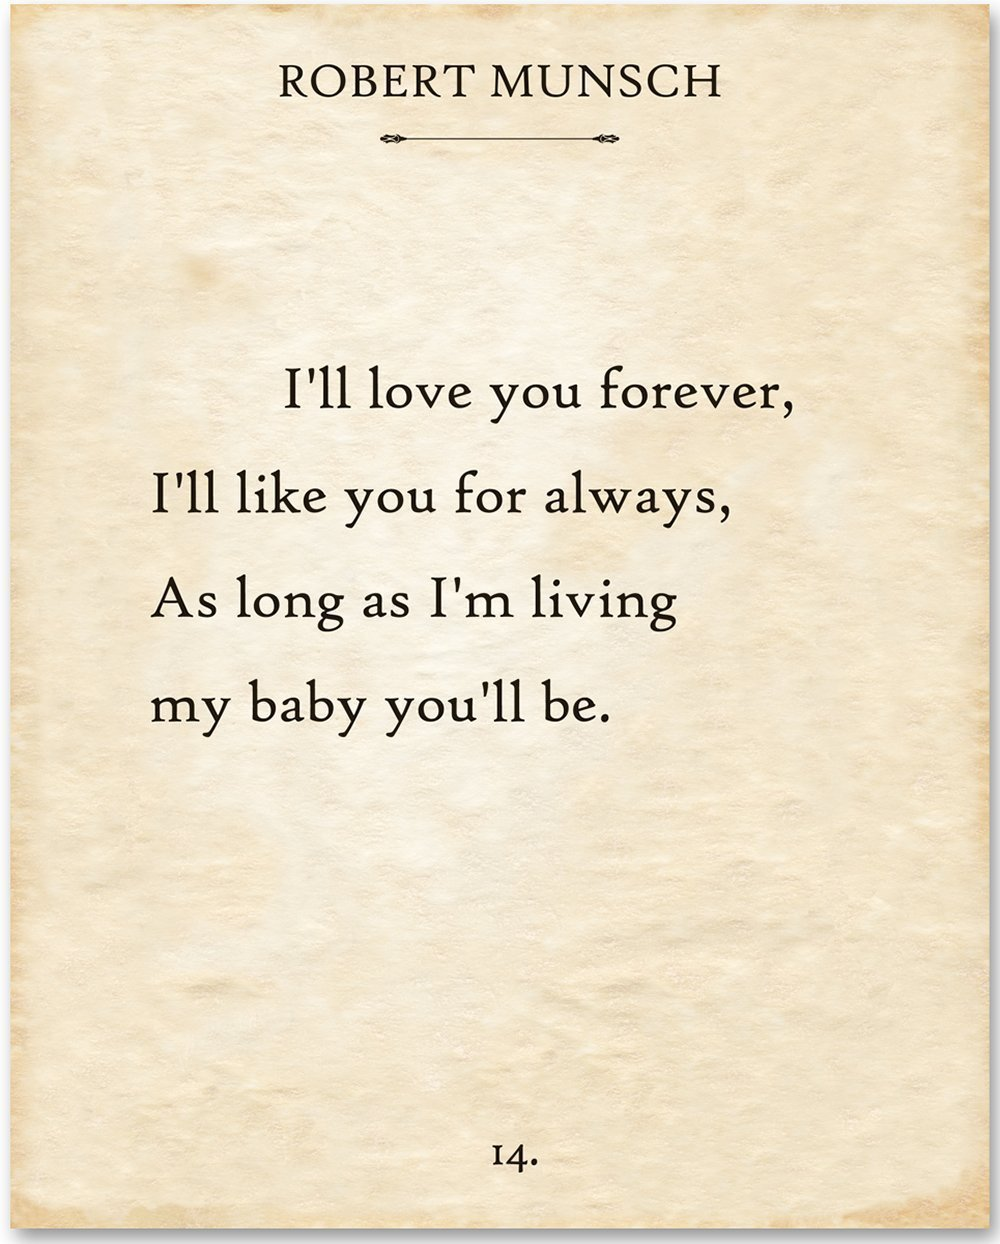 Robert Munsch - I'll Love You Forever - 11x14 Unframed Typography Book Page Print - Great Gift for Book Lovers